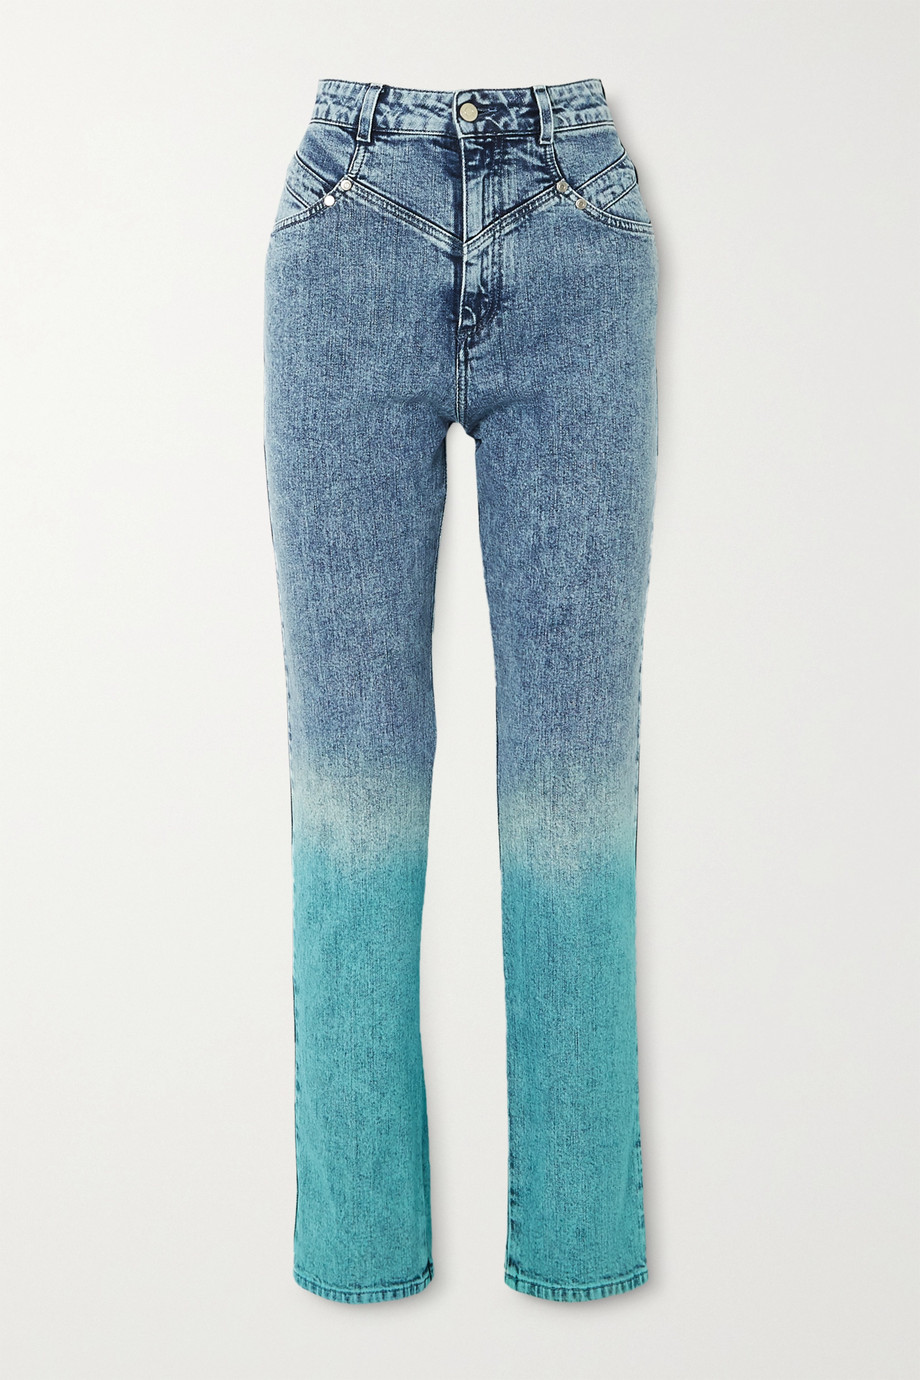 Stella McCartney Dégradé high-rise straight-leg jeans